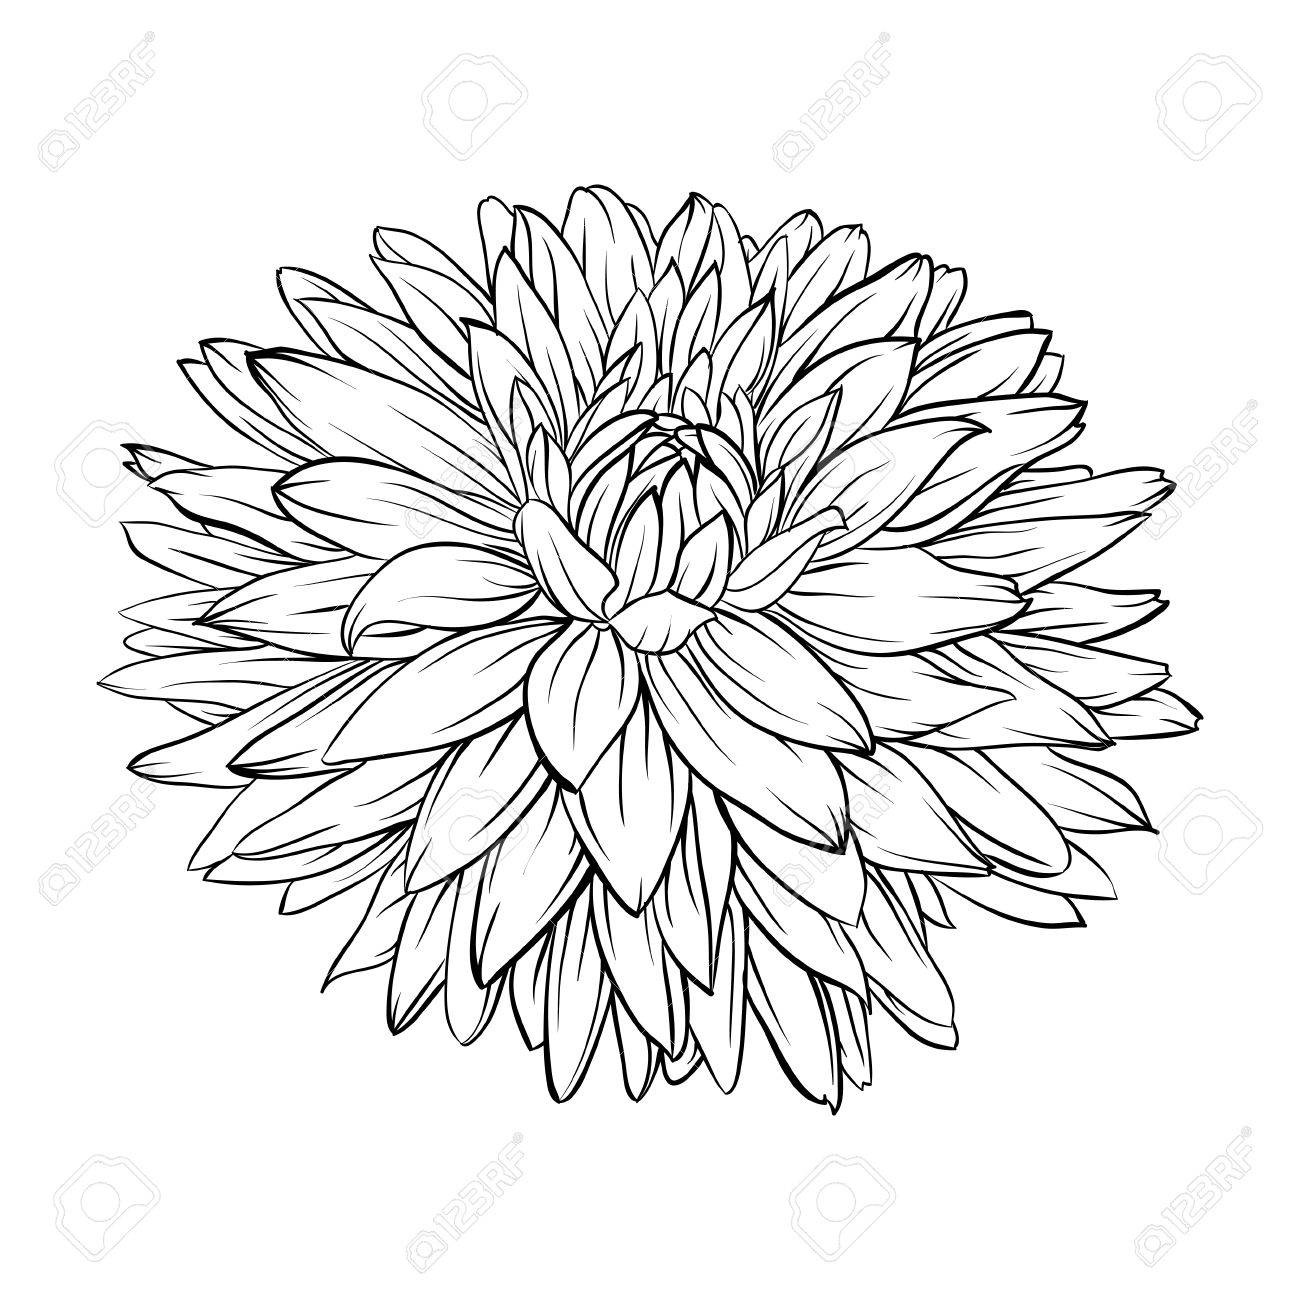 Dahlia Flower Drawing At Getdrawings Free For Personal Use